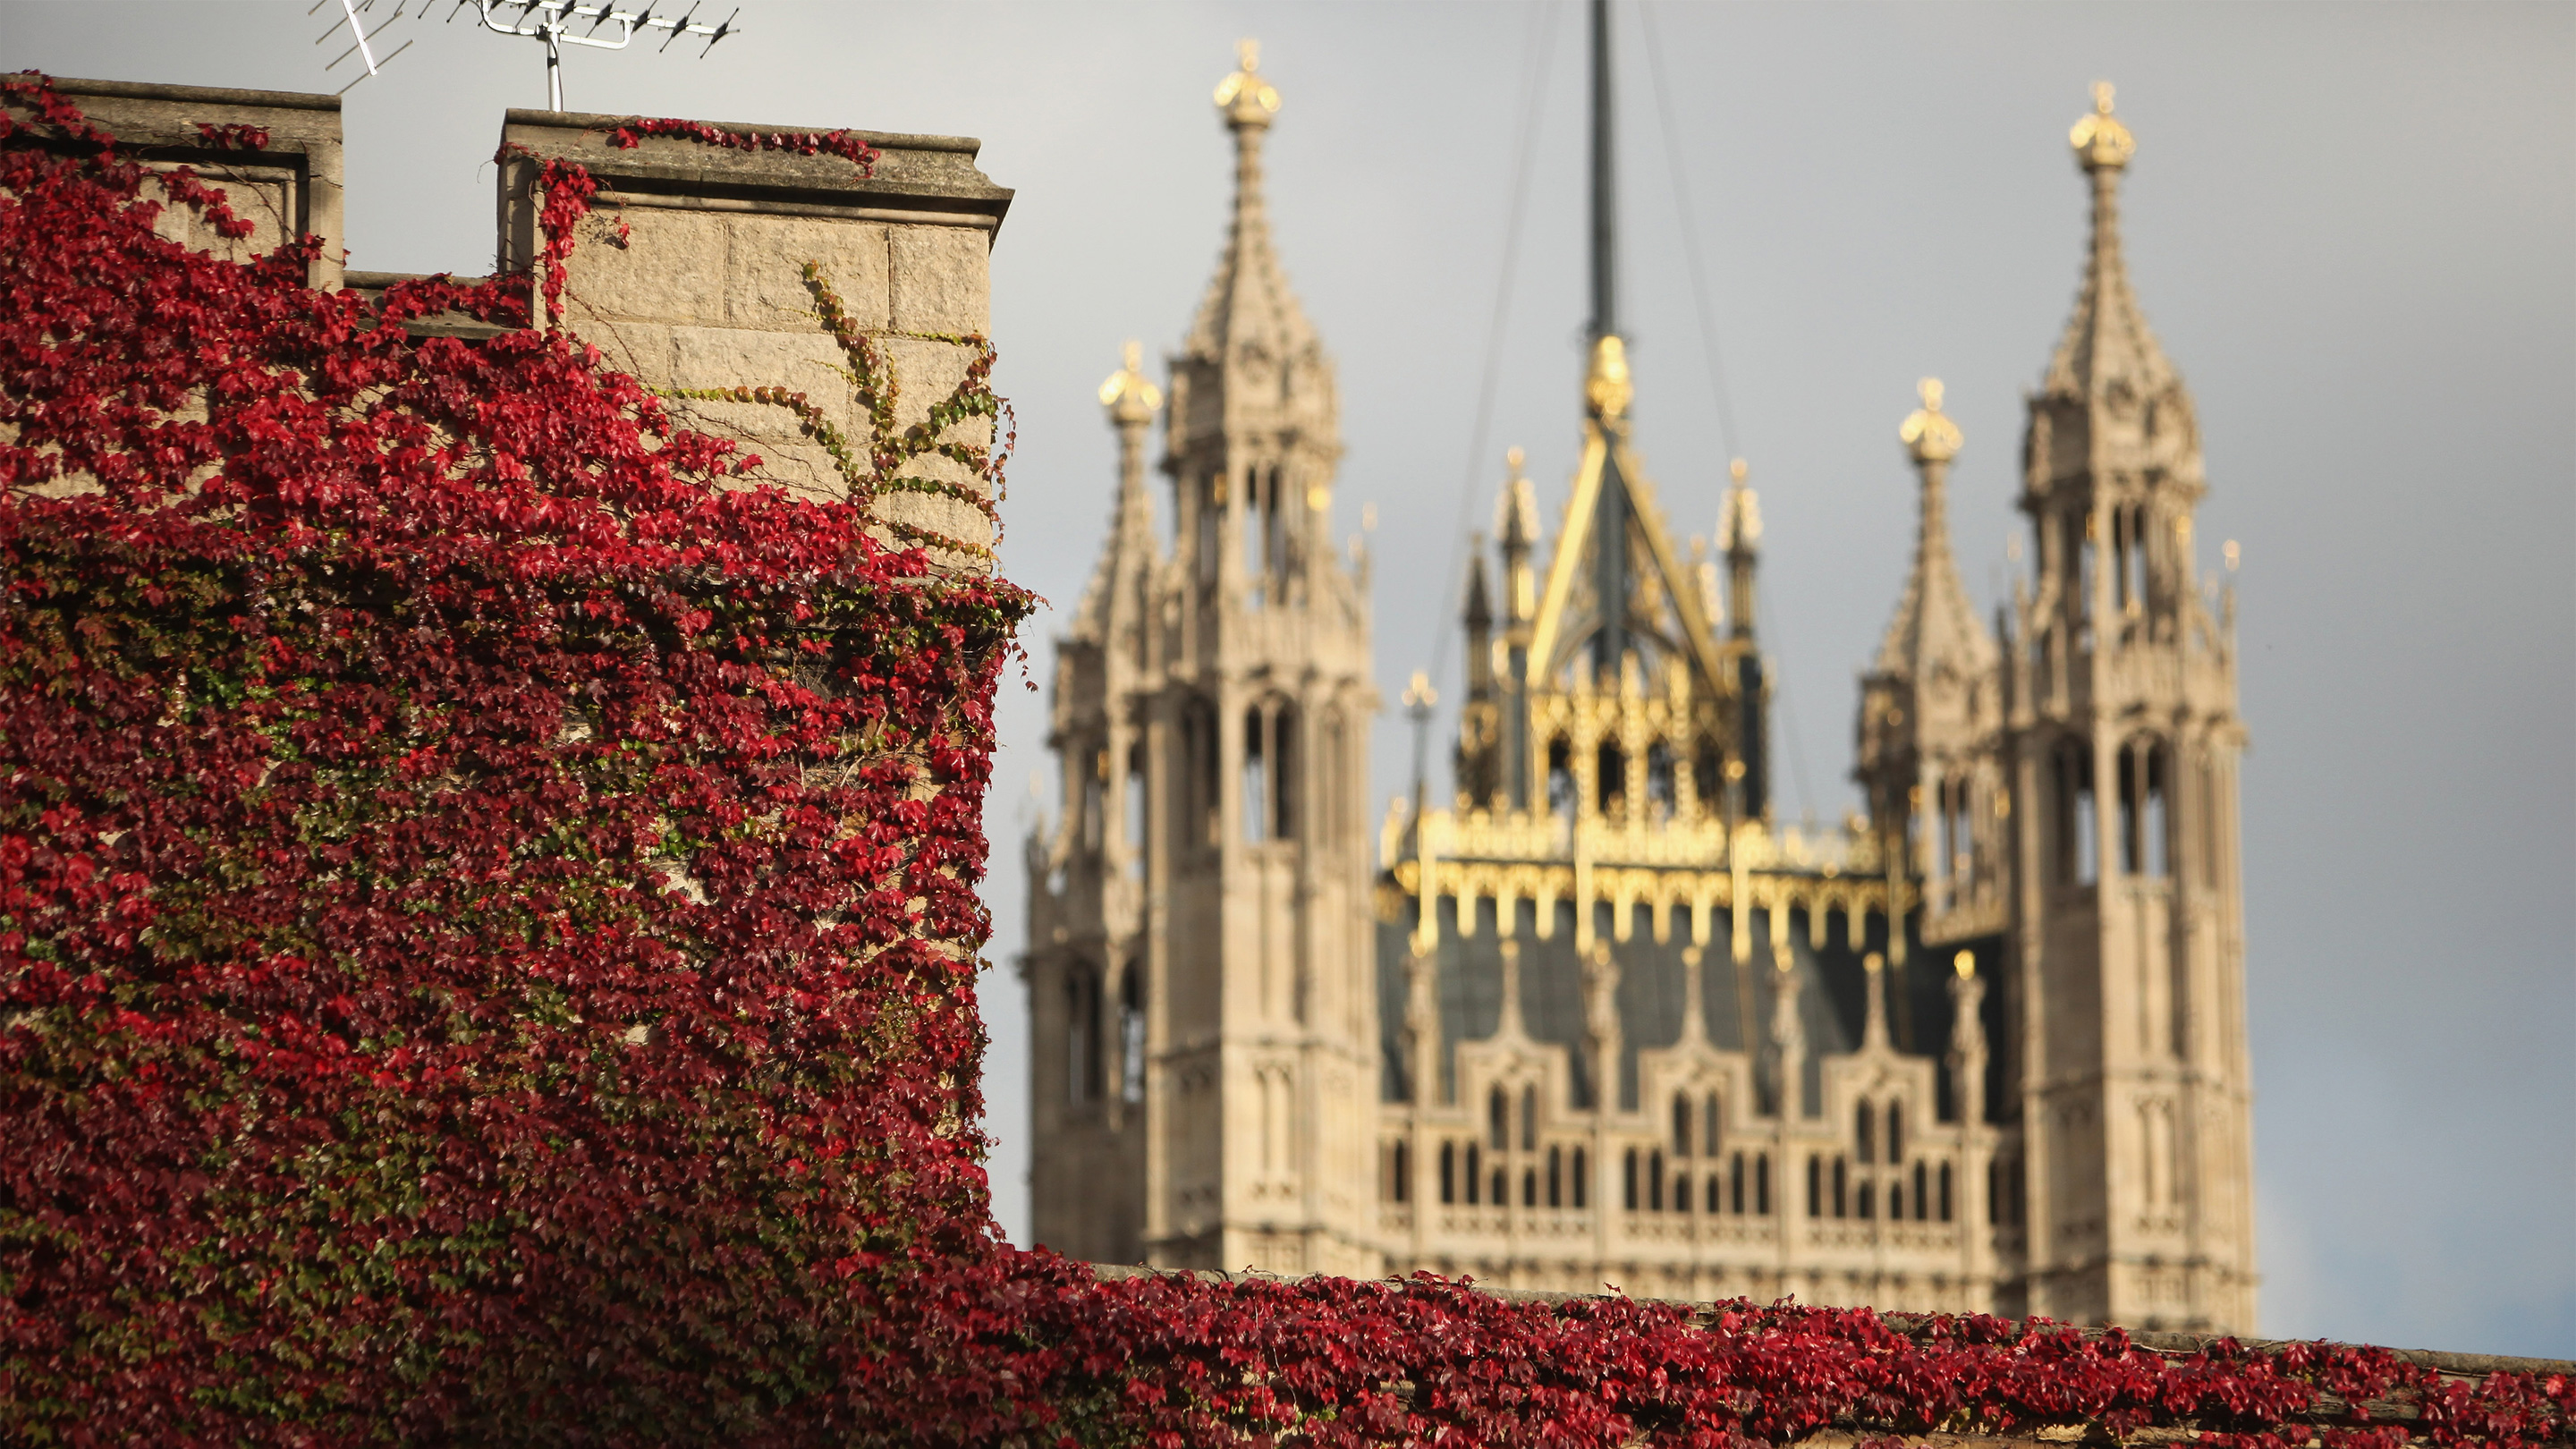 Church of England crusades against climate change